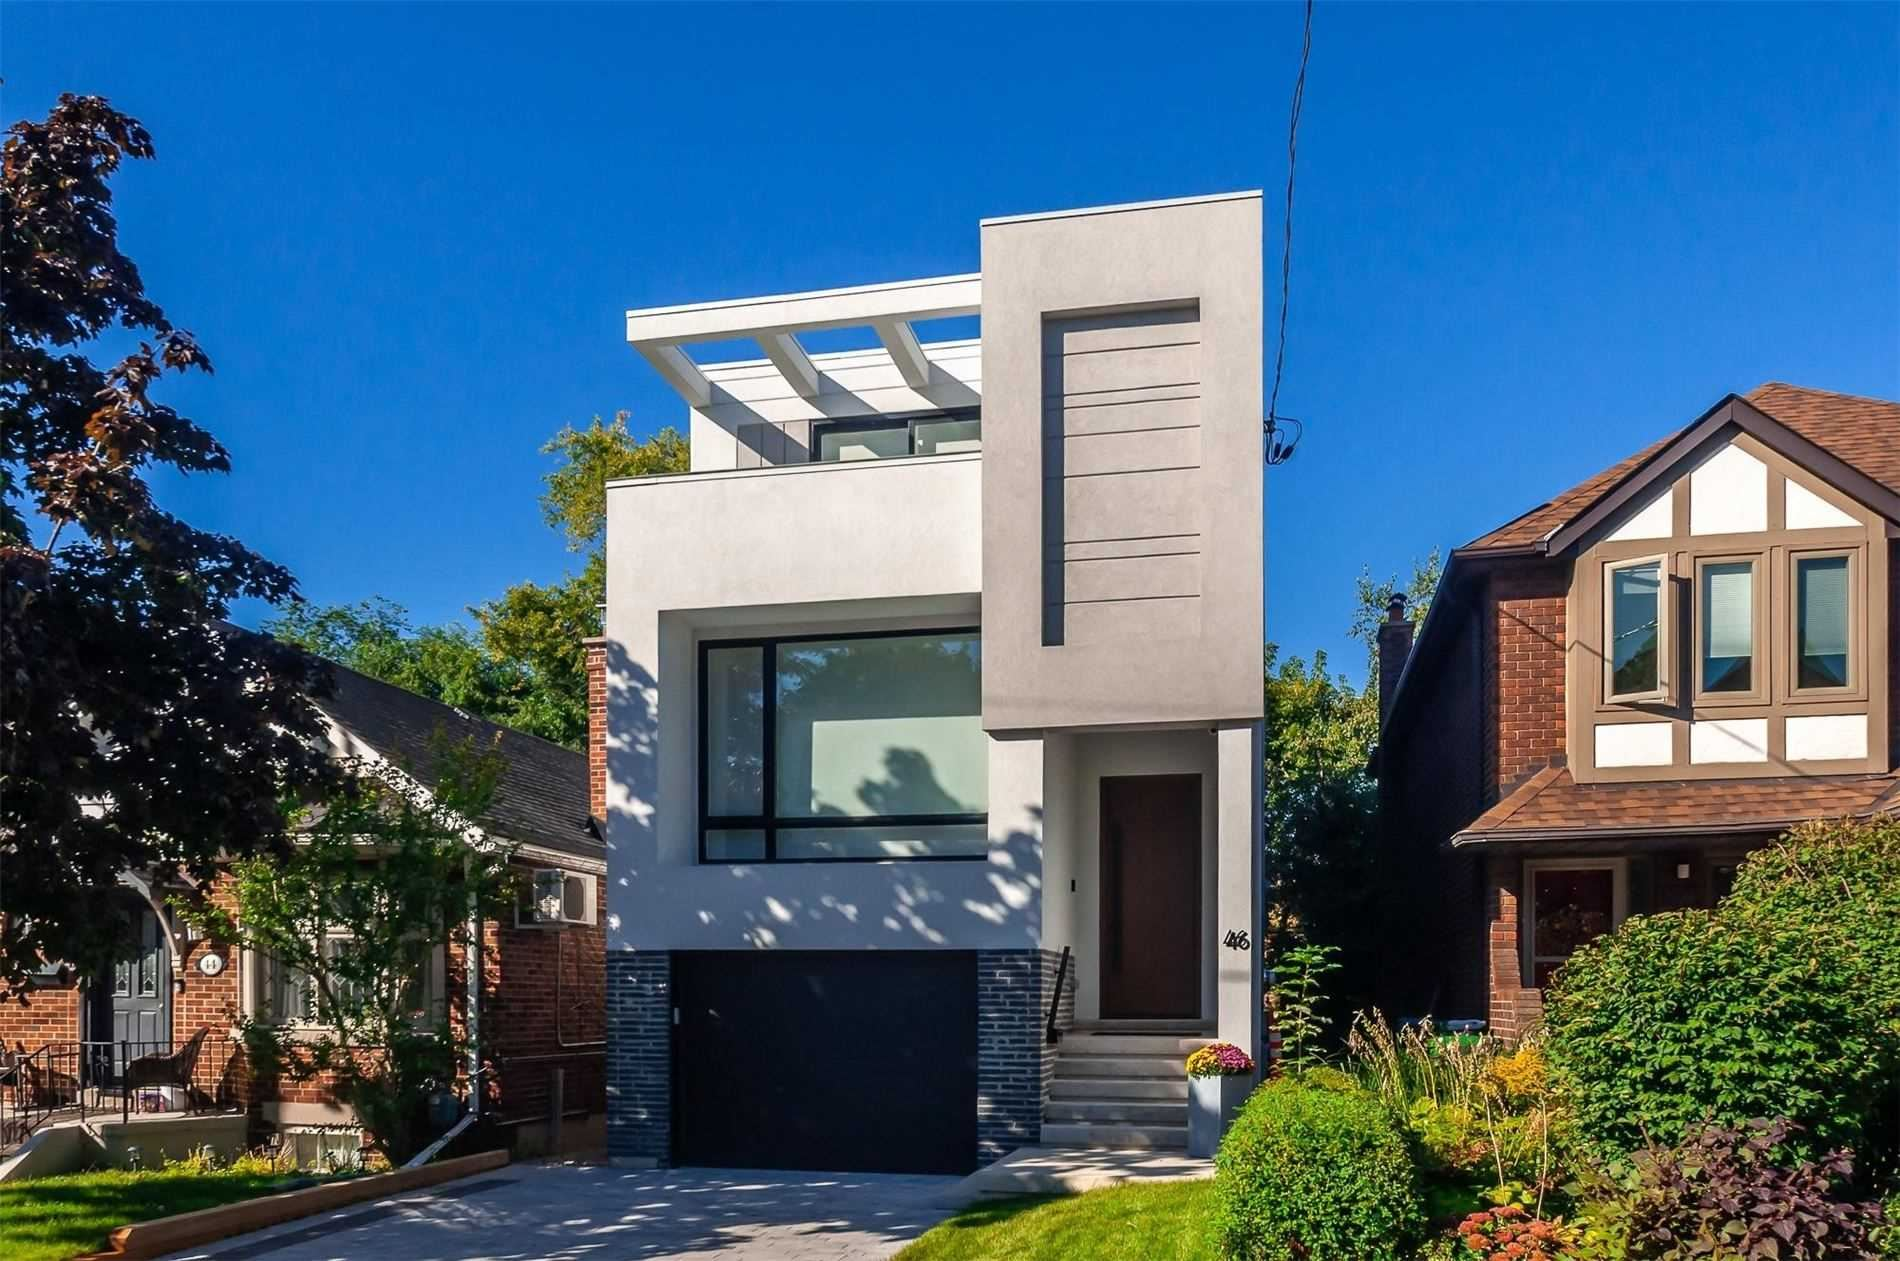 46 Beresford Ave, Toronto, ON M6S3A8 - MLS#: W5377174